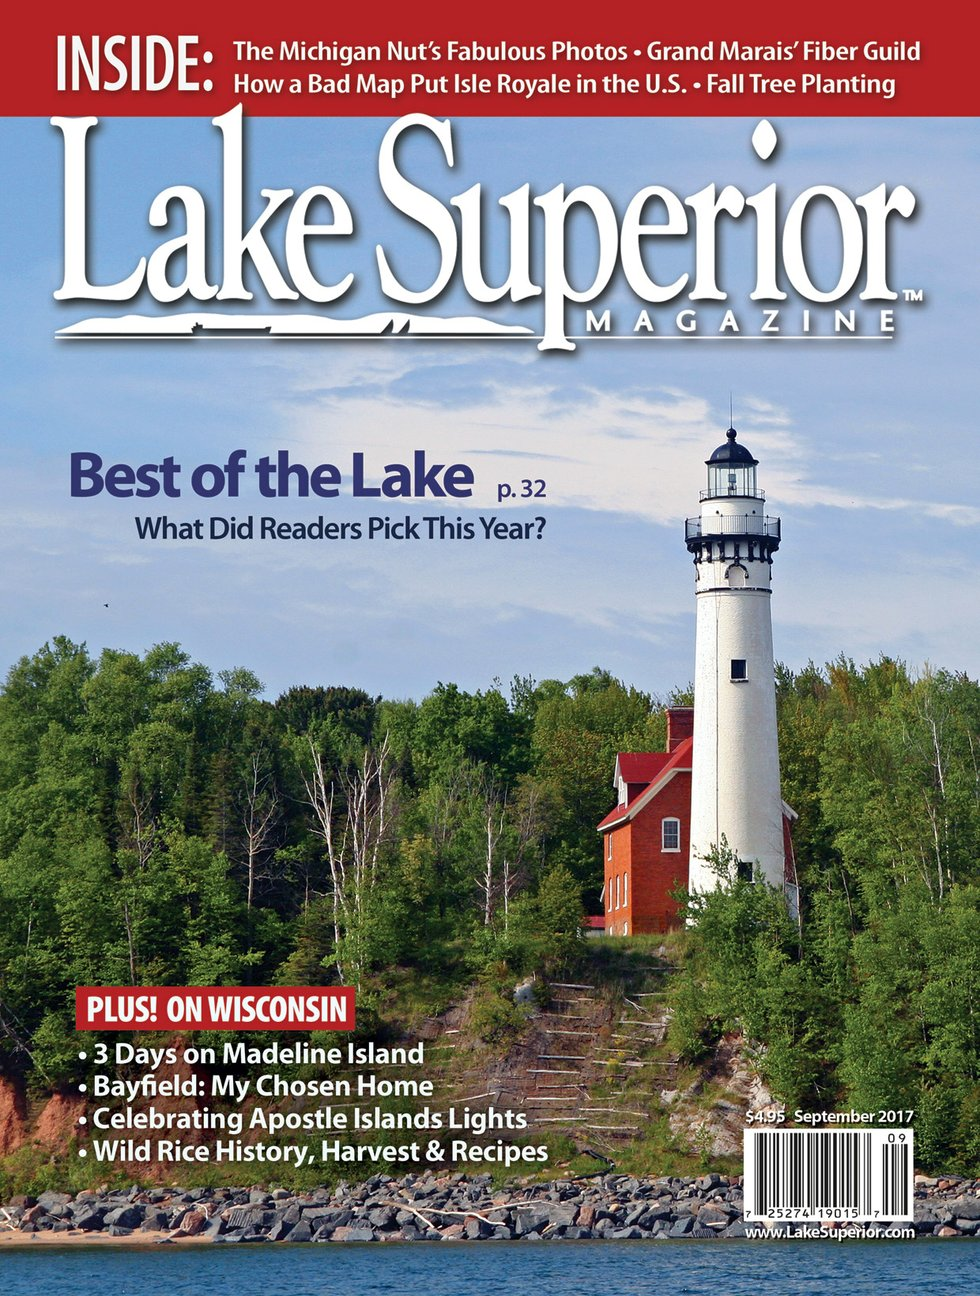 On the cover: The Wisconsin lighthouse on Outer Island is one of those with rare guided cruise visits possible only during the Apostle Islands Lighthouse Celebration. Photo by Mark Weller.